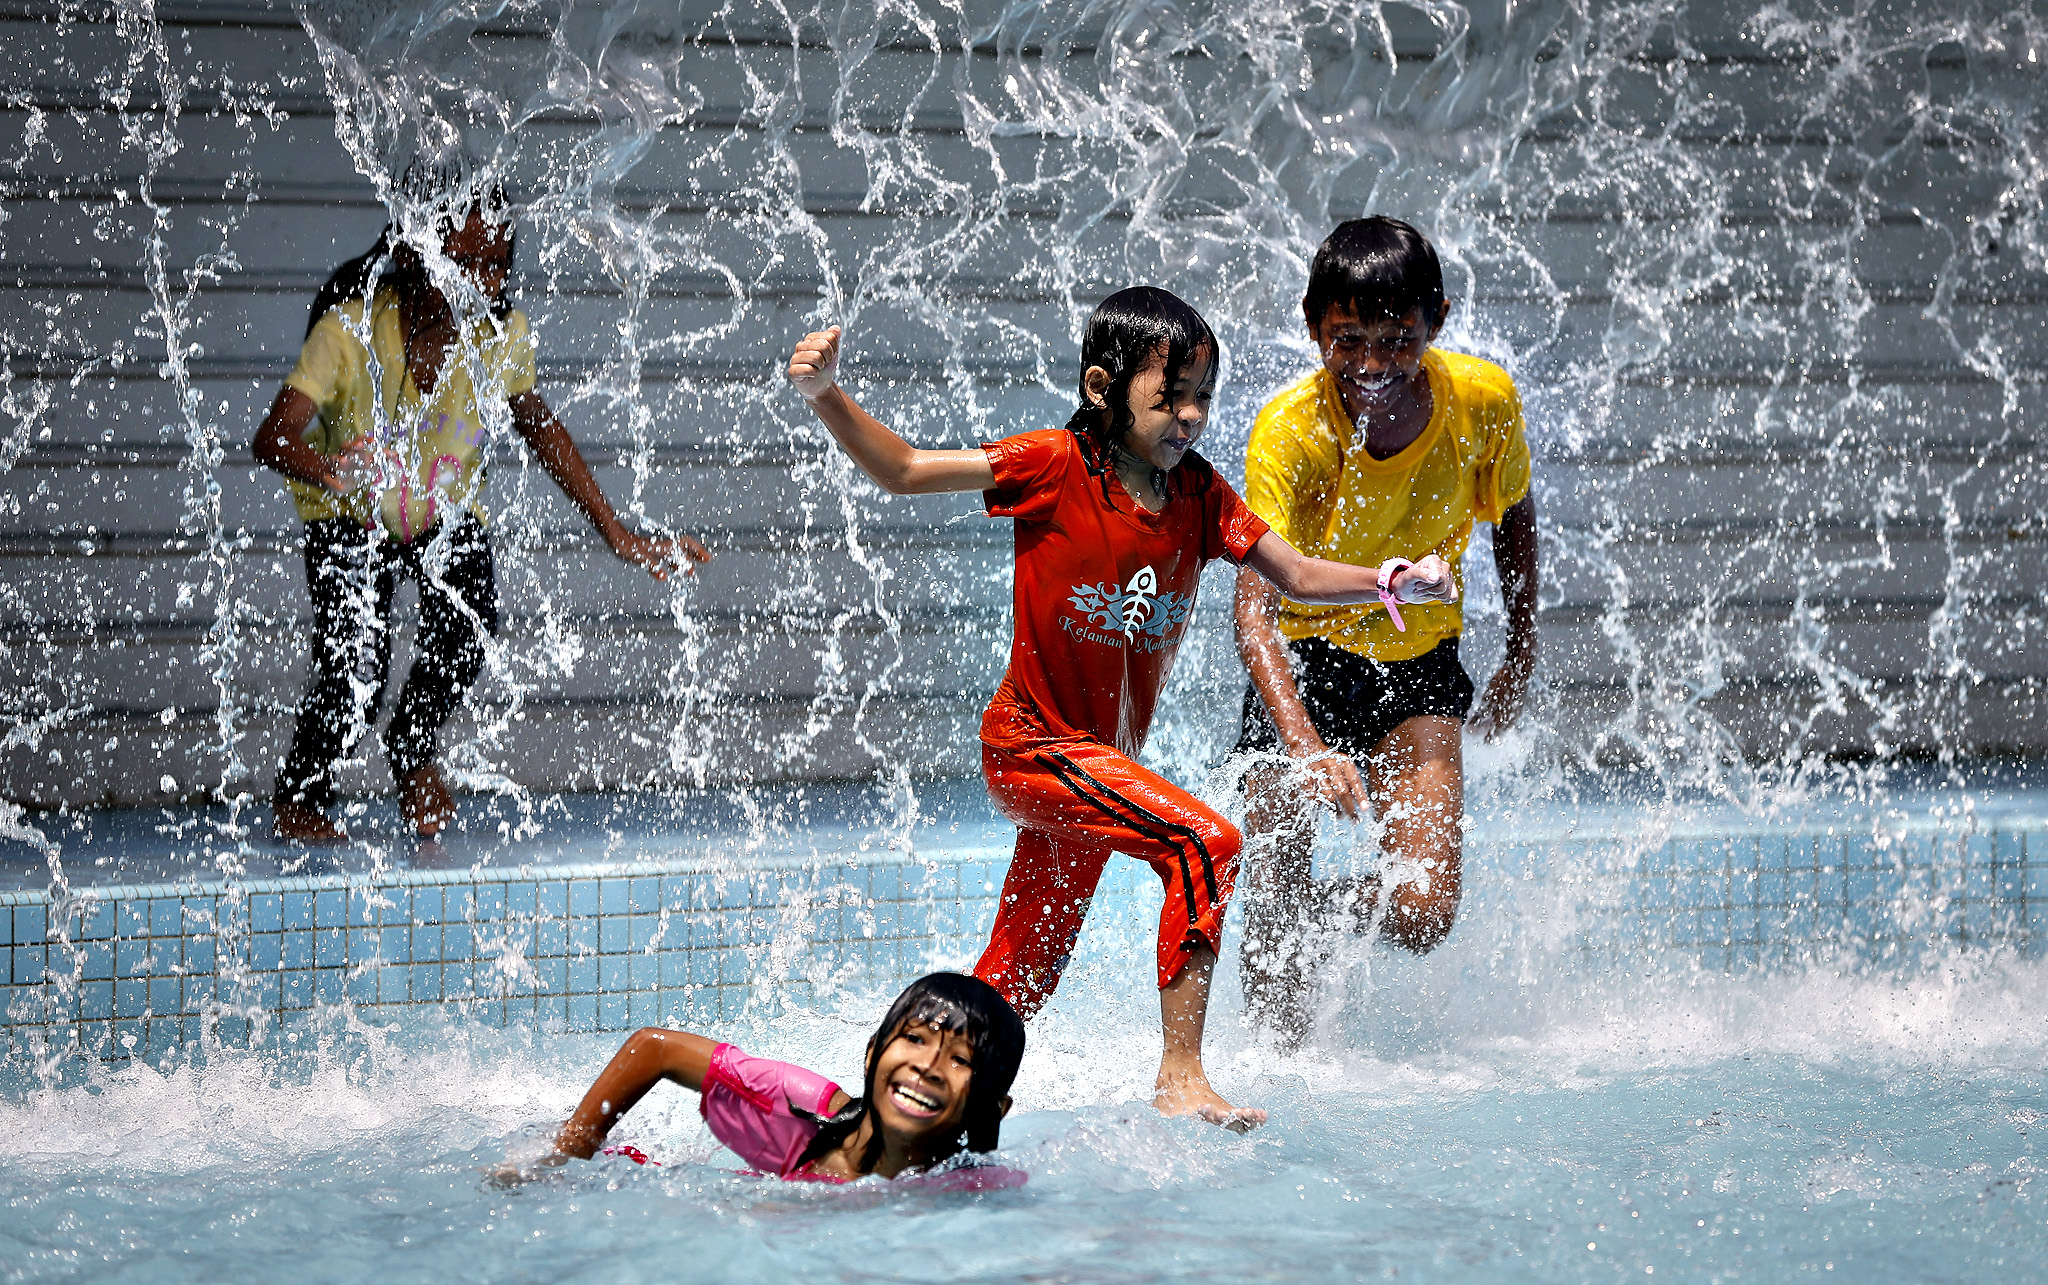 Children play in the pool in front of Malaysia's landmark Petronas Twin Towers in Kuala Lumpur, Malaysia, Thursday, June 12, 2014.